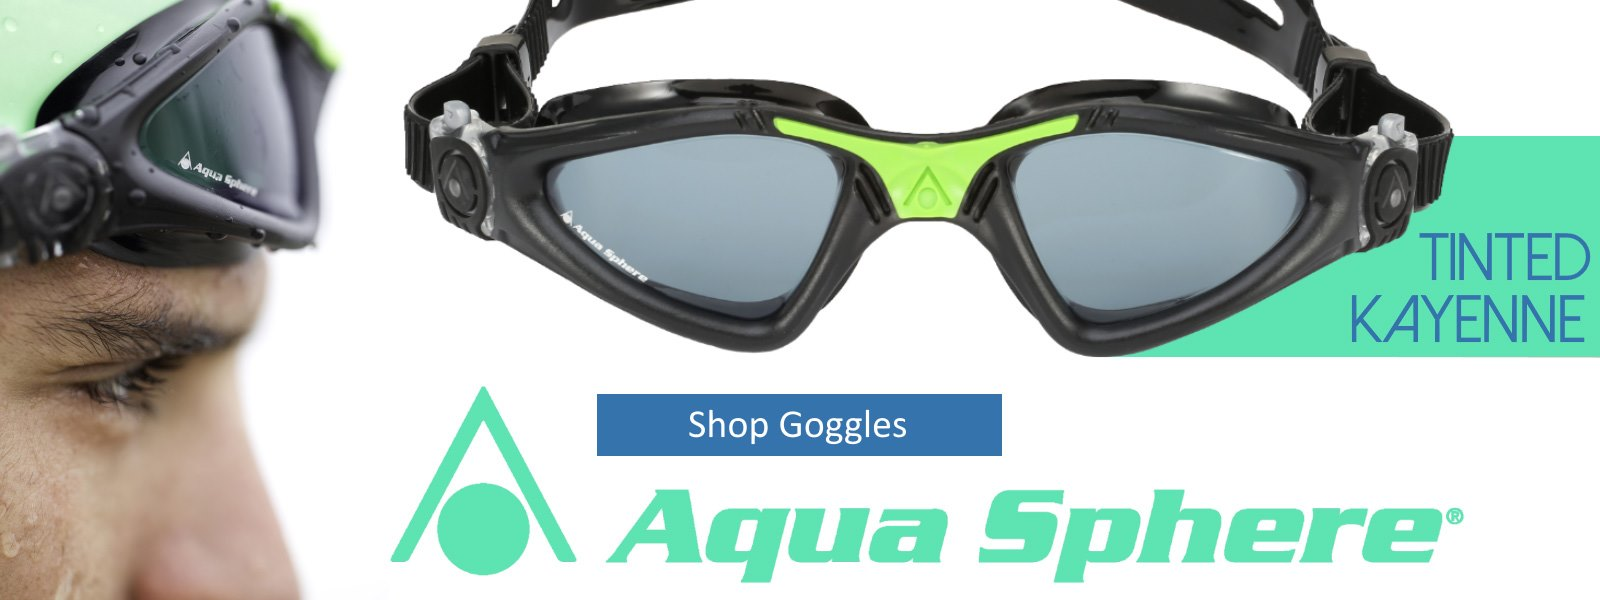 Aqua Sphere Kayenne - Shop All Aqua Sphere